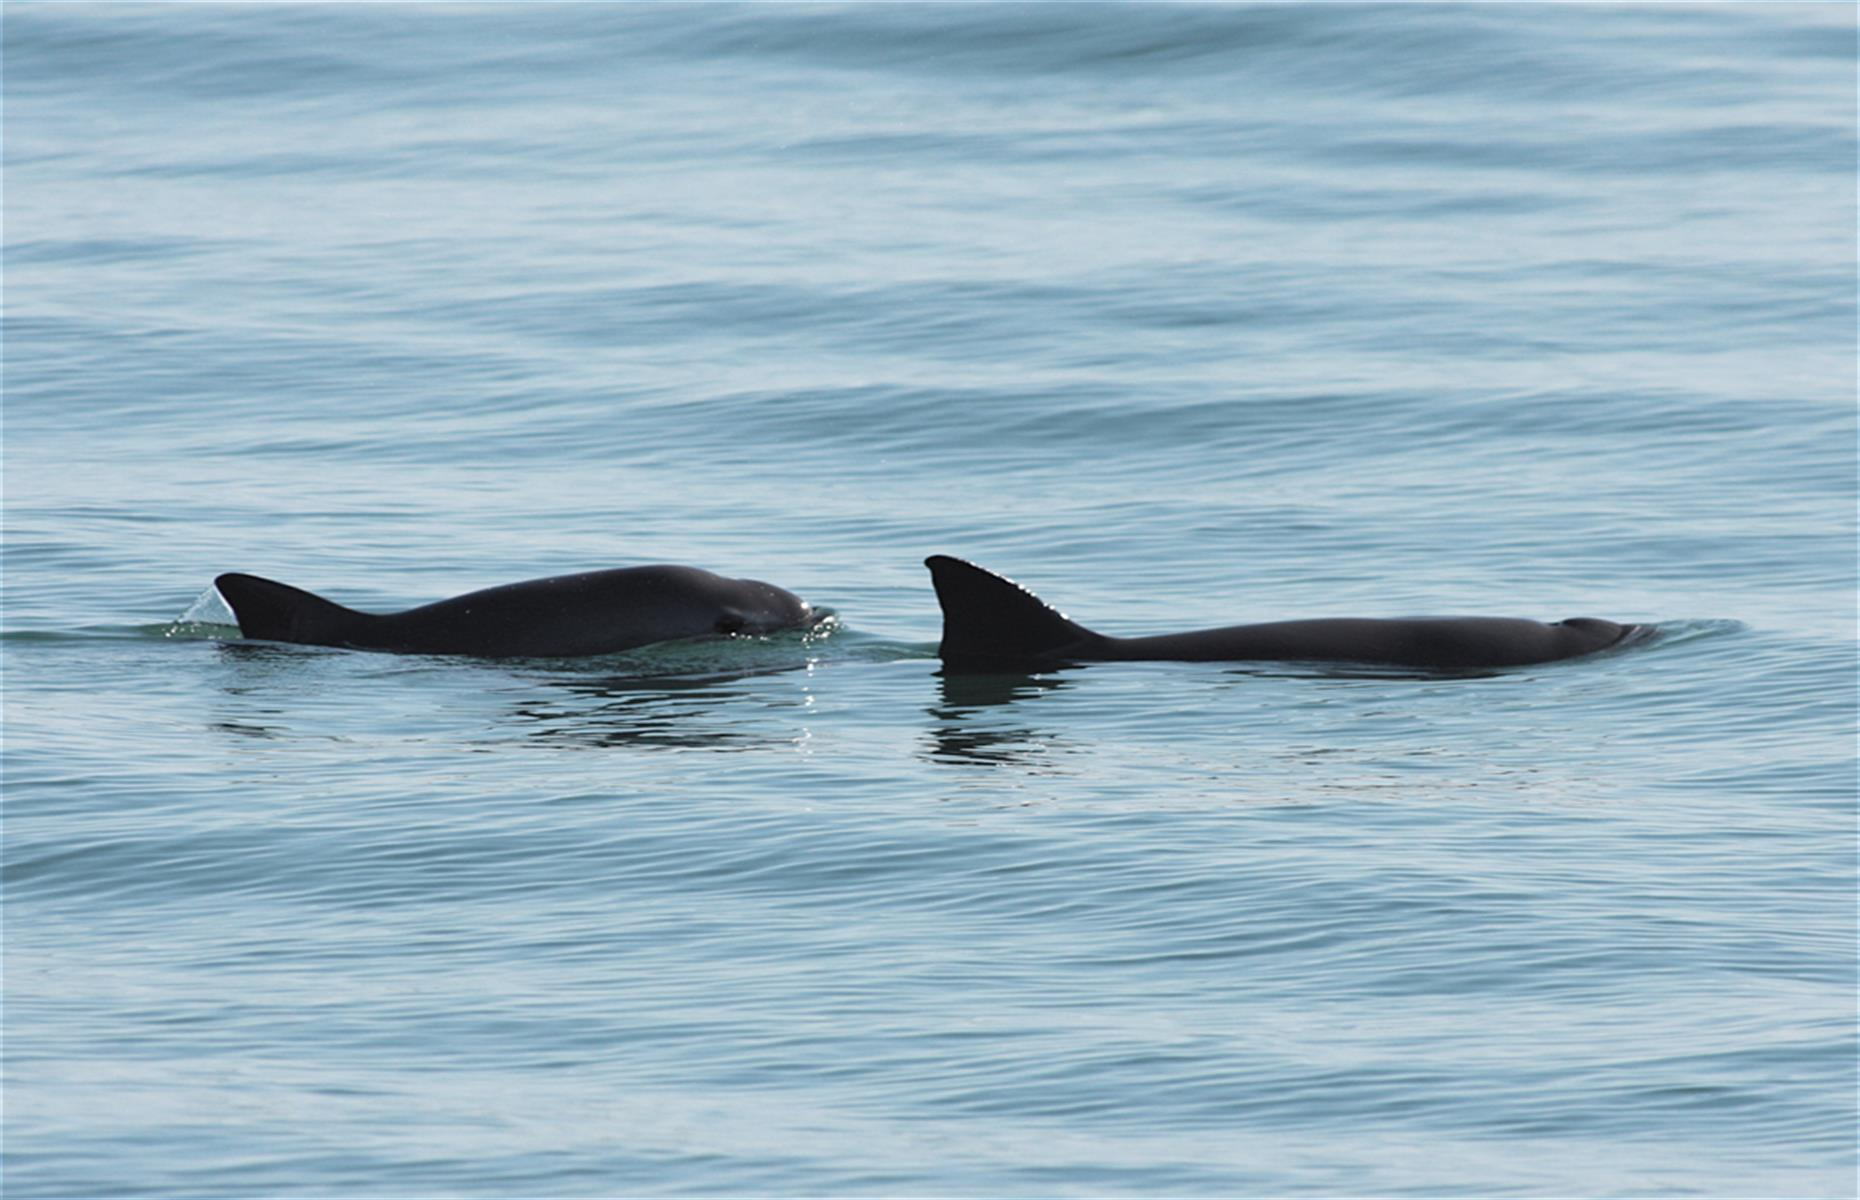 Slide 30 of 53: The imminent extinction of the vaquita, an endemic porpoise in Mexico's Gulf of California that is the world's rarest marine mammal, has seen the Islands and Protected Areas of the Gulf of California placed on the List of World Heritage in Danger for 2019. Despite efforts by Mexico to protect them, including creating a refuge and promoting fishing alternatives to gillnets (the main cause of their demise), only about 10 vaquita remain today. This is compared to nearly 300 in 2005.